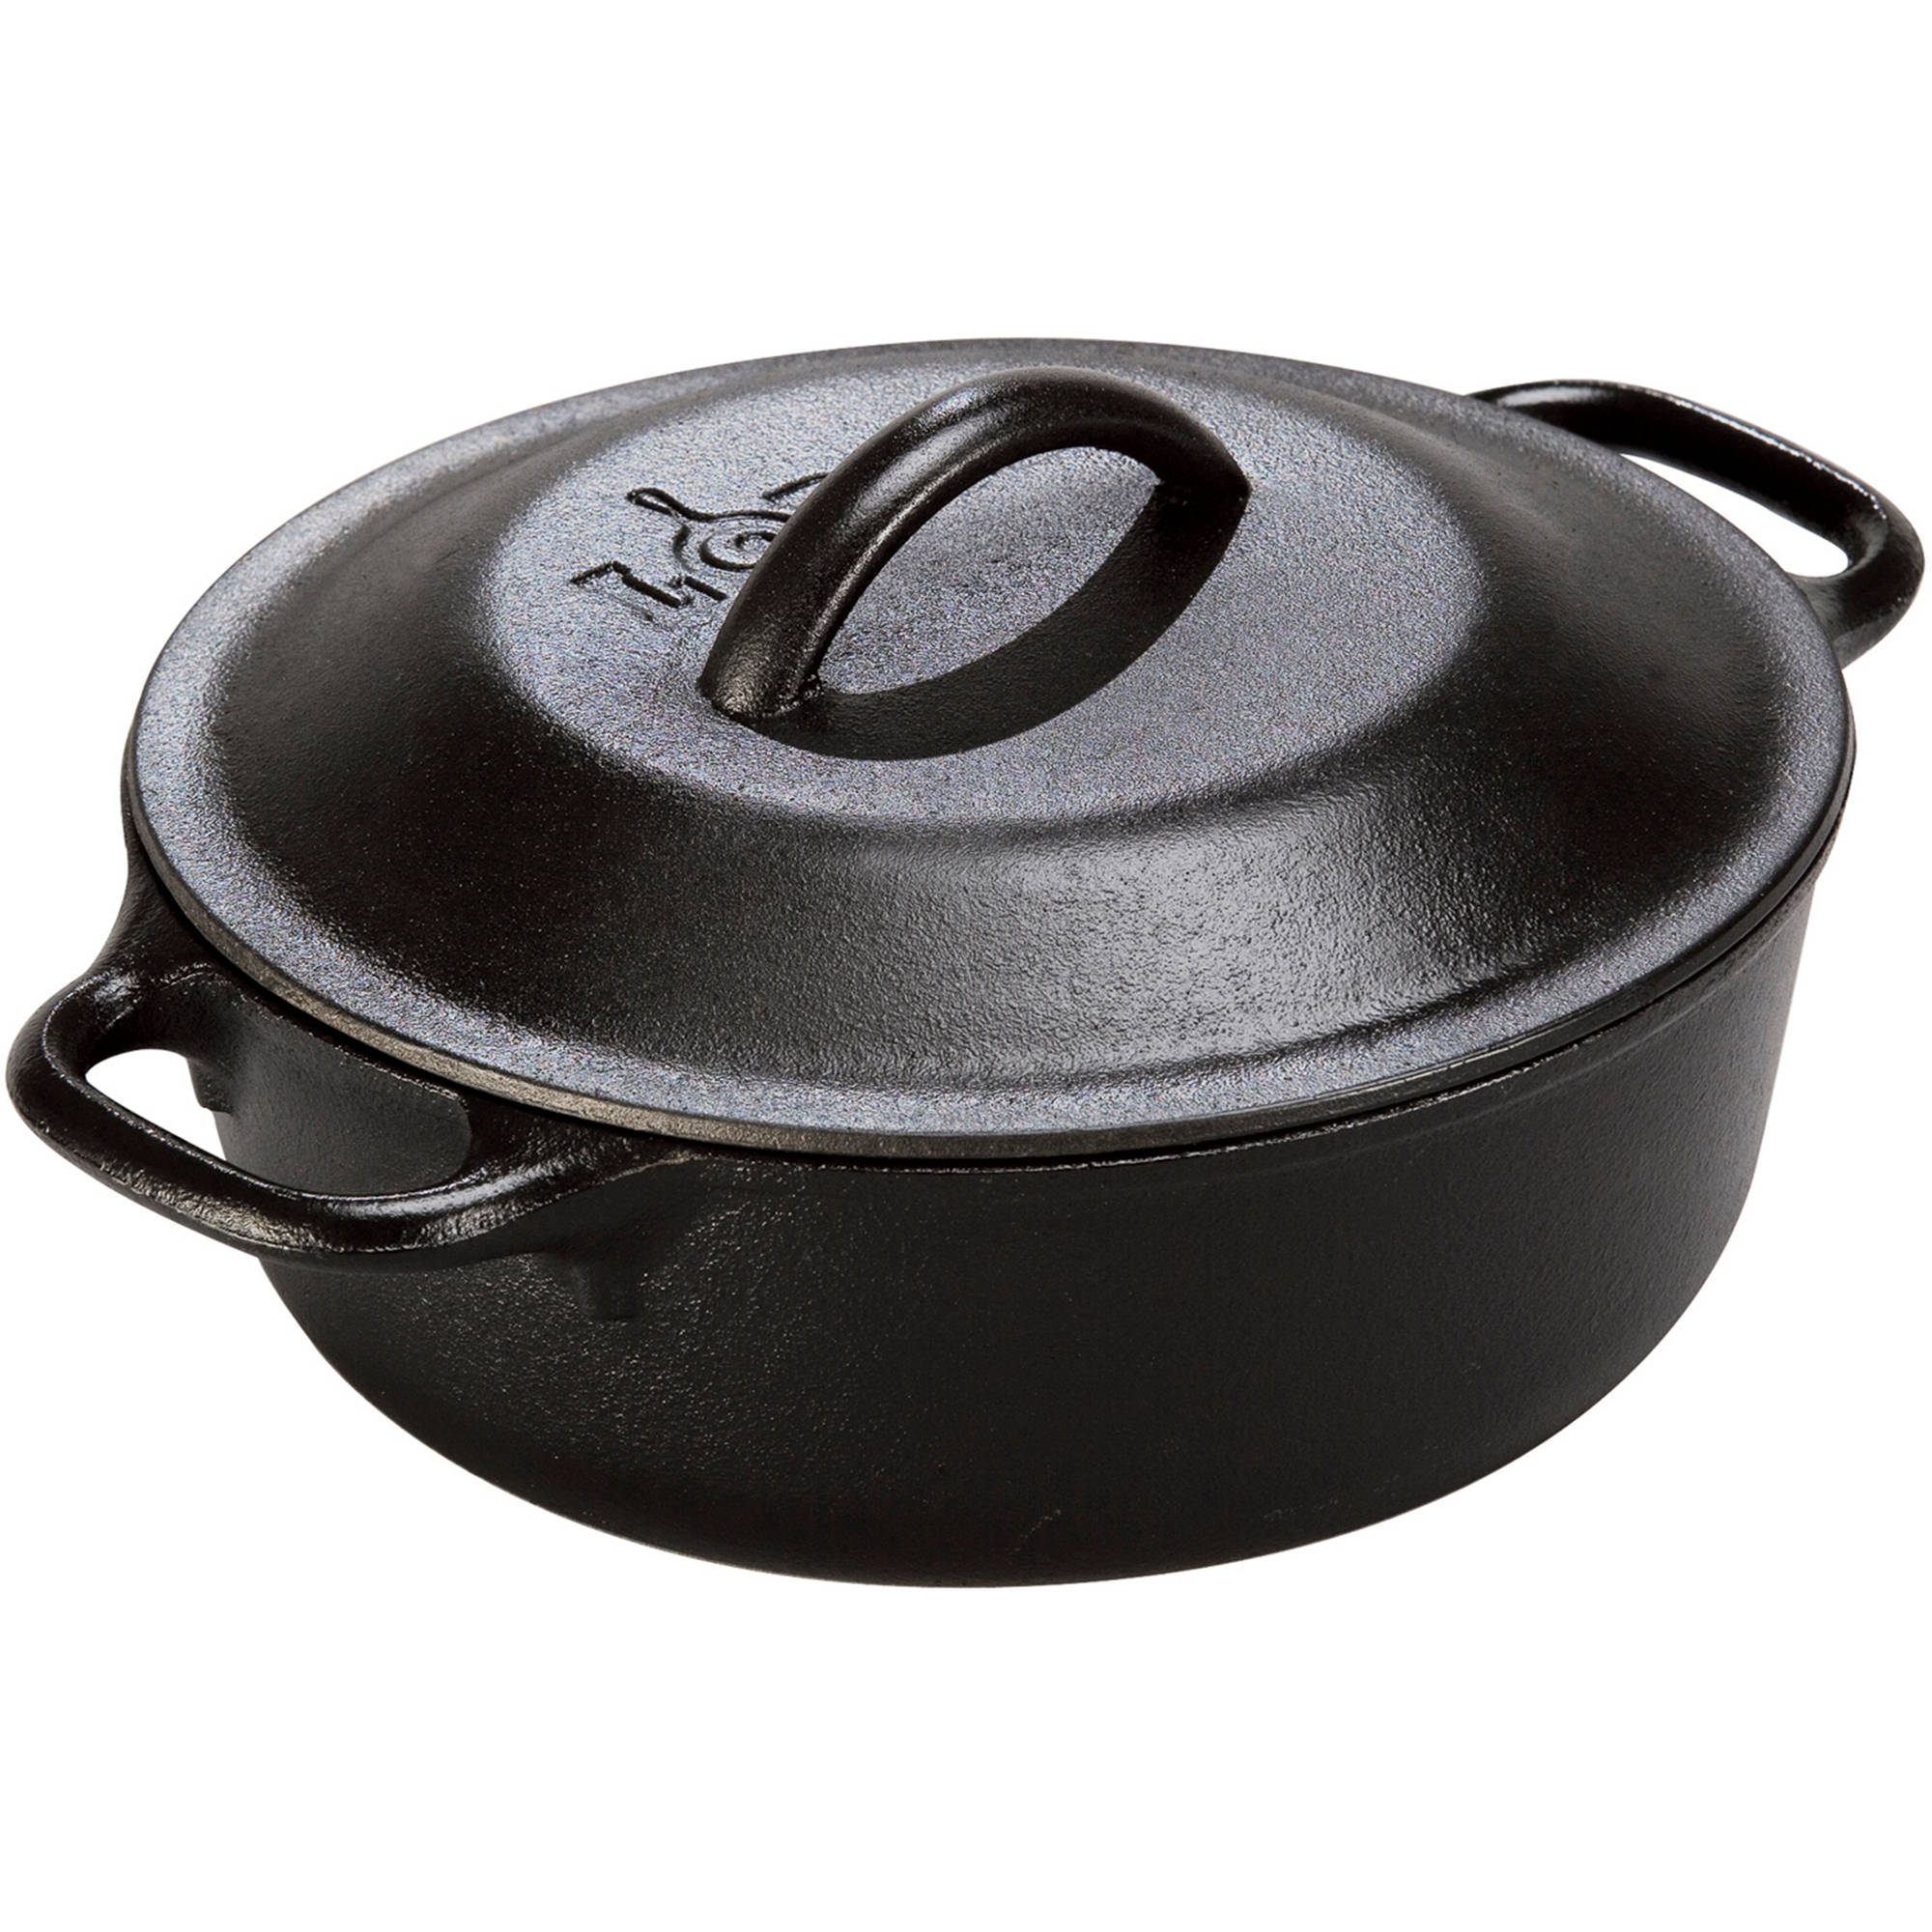 Cheap cajun cookware dutch ovens 6 quart seasoned cast iron dutch oven - Lodge 8 Cast Iron Serving Pot Pre Seasoned 2 Quart L2sp3 Walmart Com